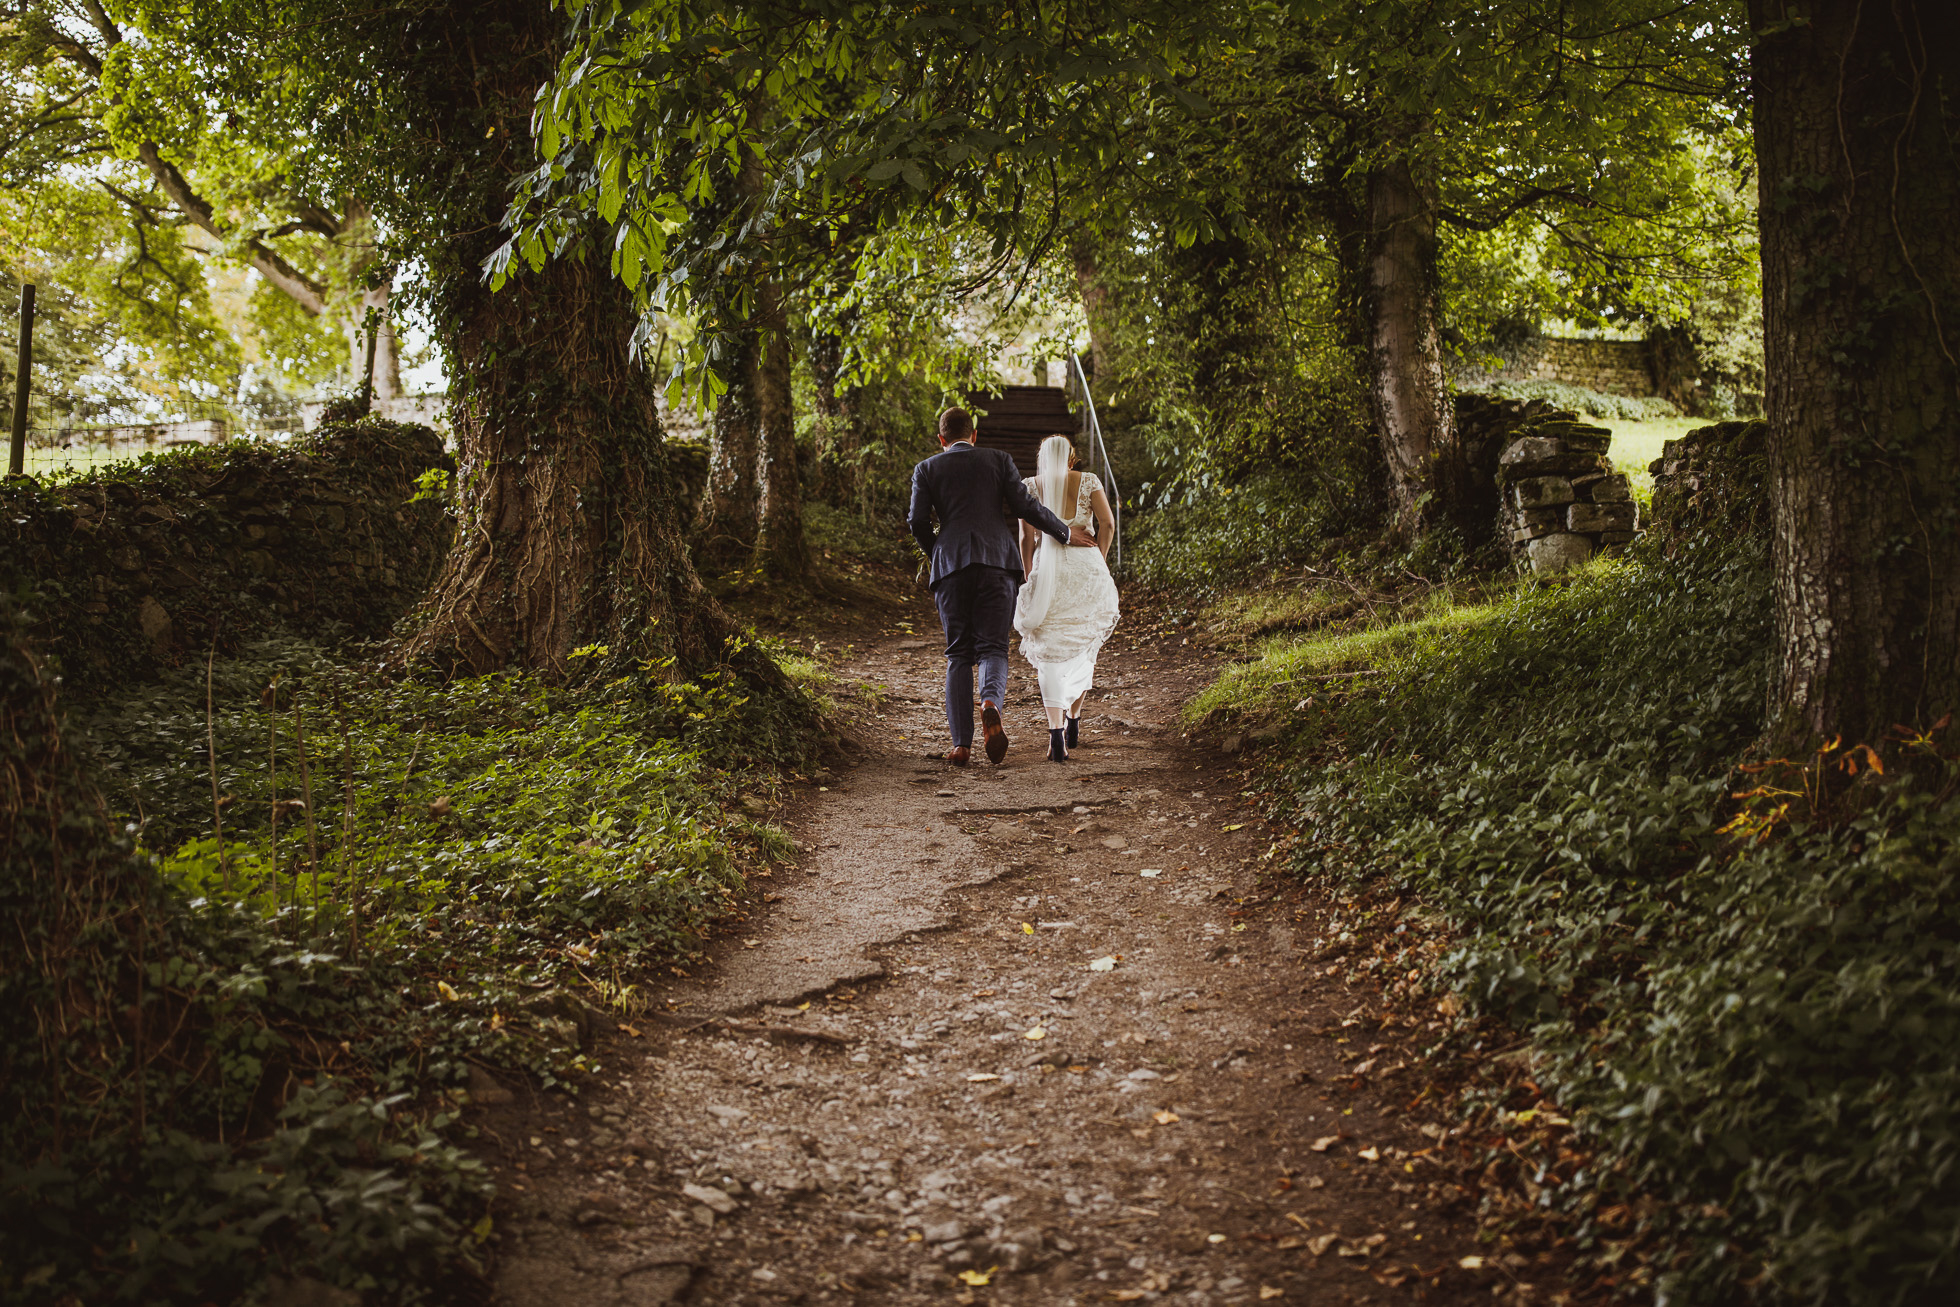 blue_lion_yorkshire_wedding_photographer-68.jpg